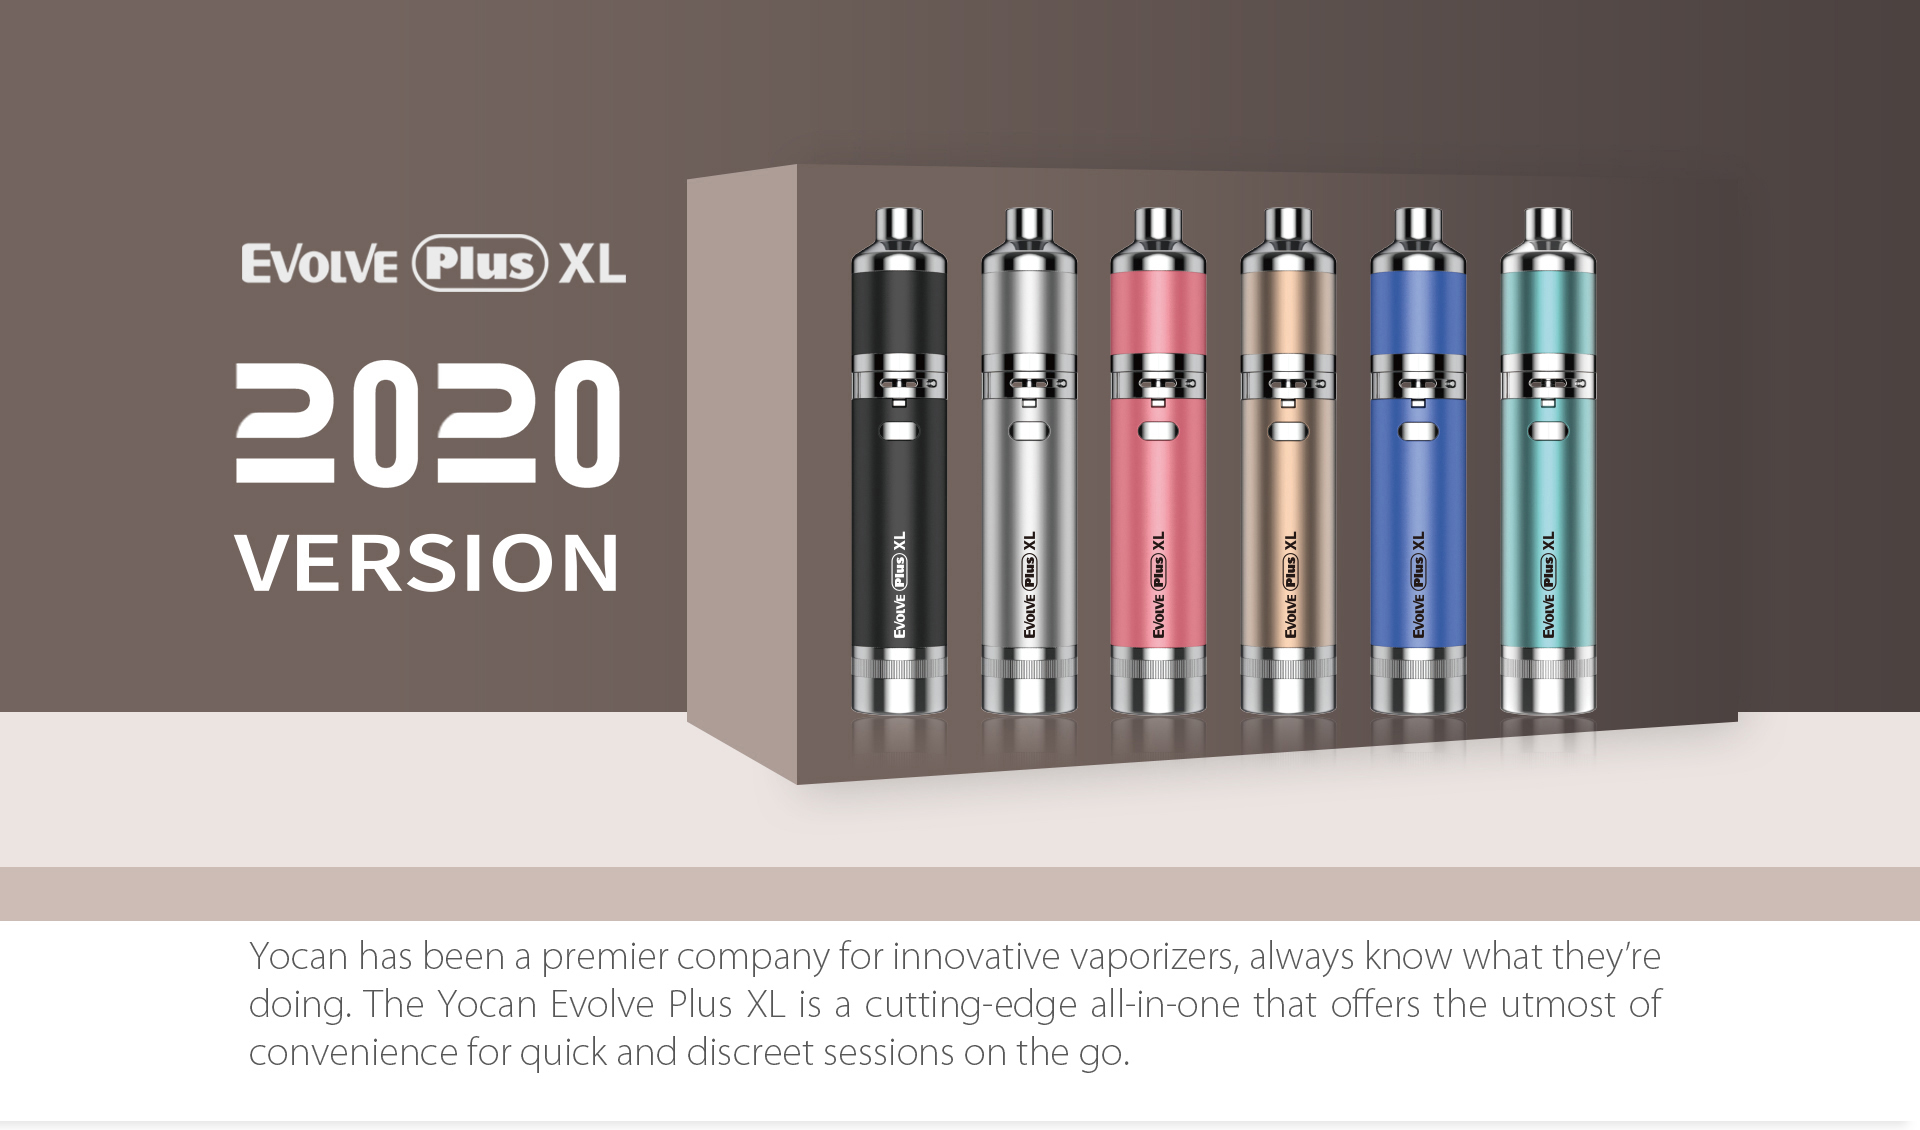 Yocan Evolve Plus XL Vaporizer 2020 version is a cutting-edge all-in-one that offers the utmost of convenience for quick and discreet sessions on the go.